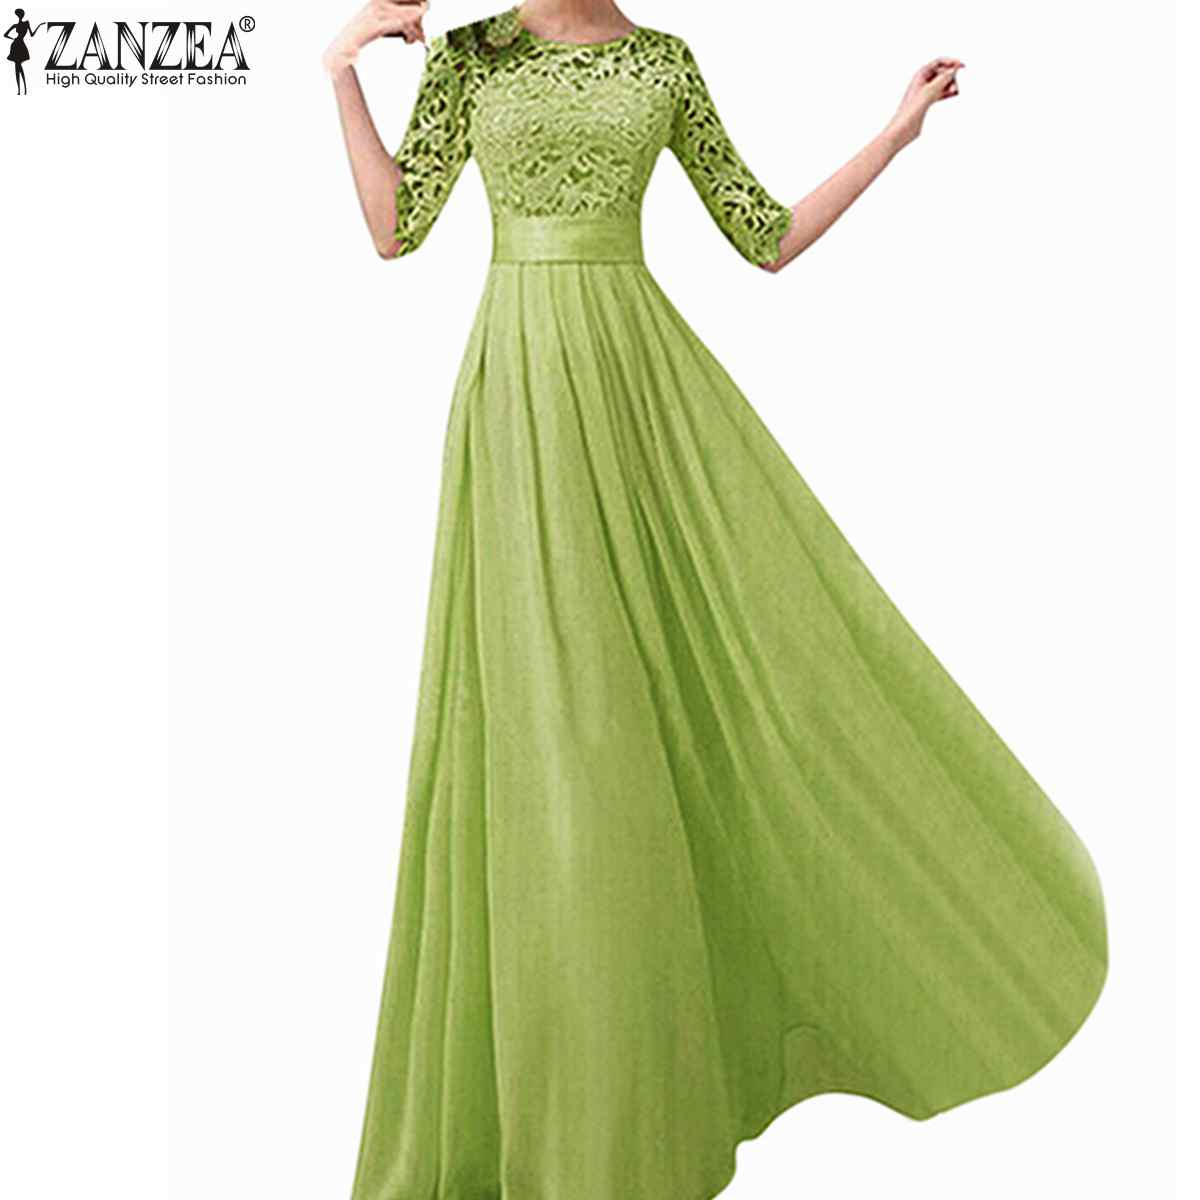 Plus Size Linen Maxi Dresses Wiring Diagrams Light Switch Diagram File Name 282724d1353431121 4 Dpdt Sexy Dres Reviews Online Shopping On Beautiful Dress